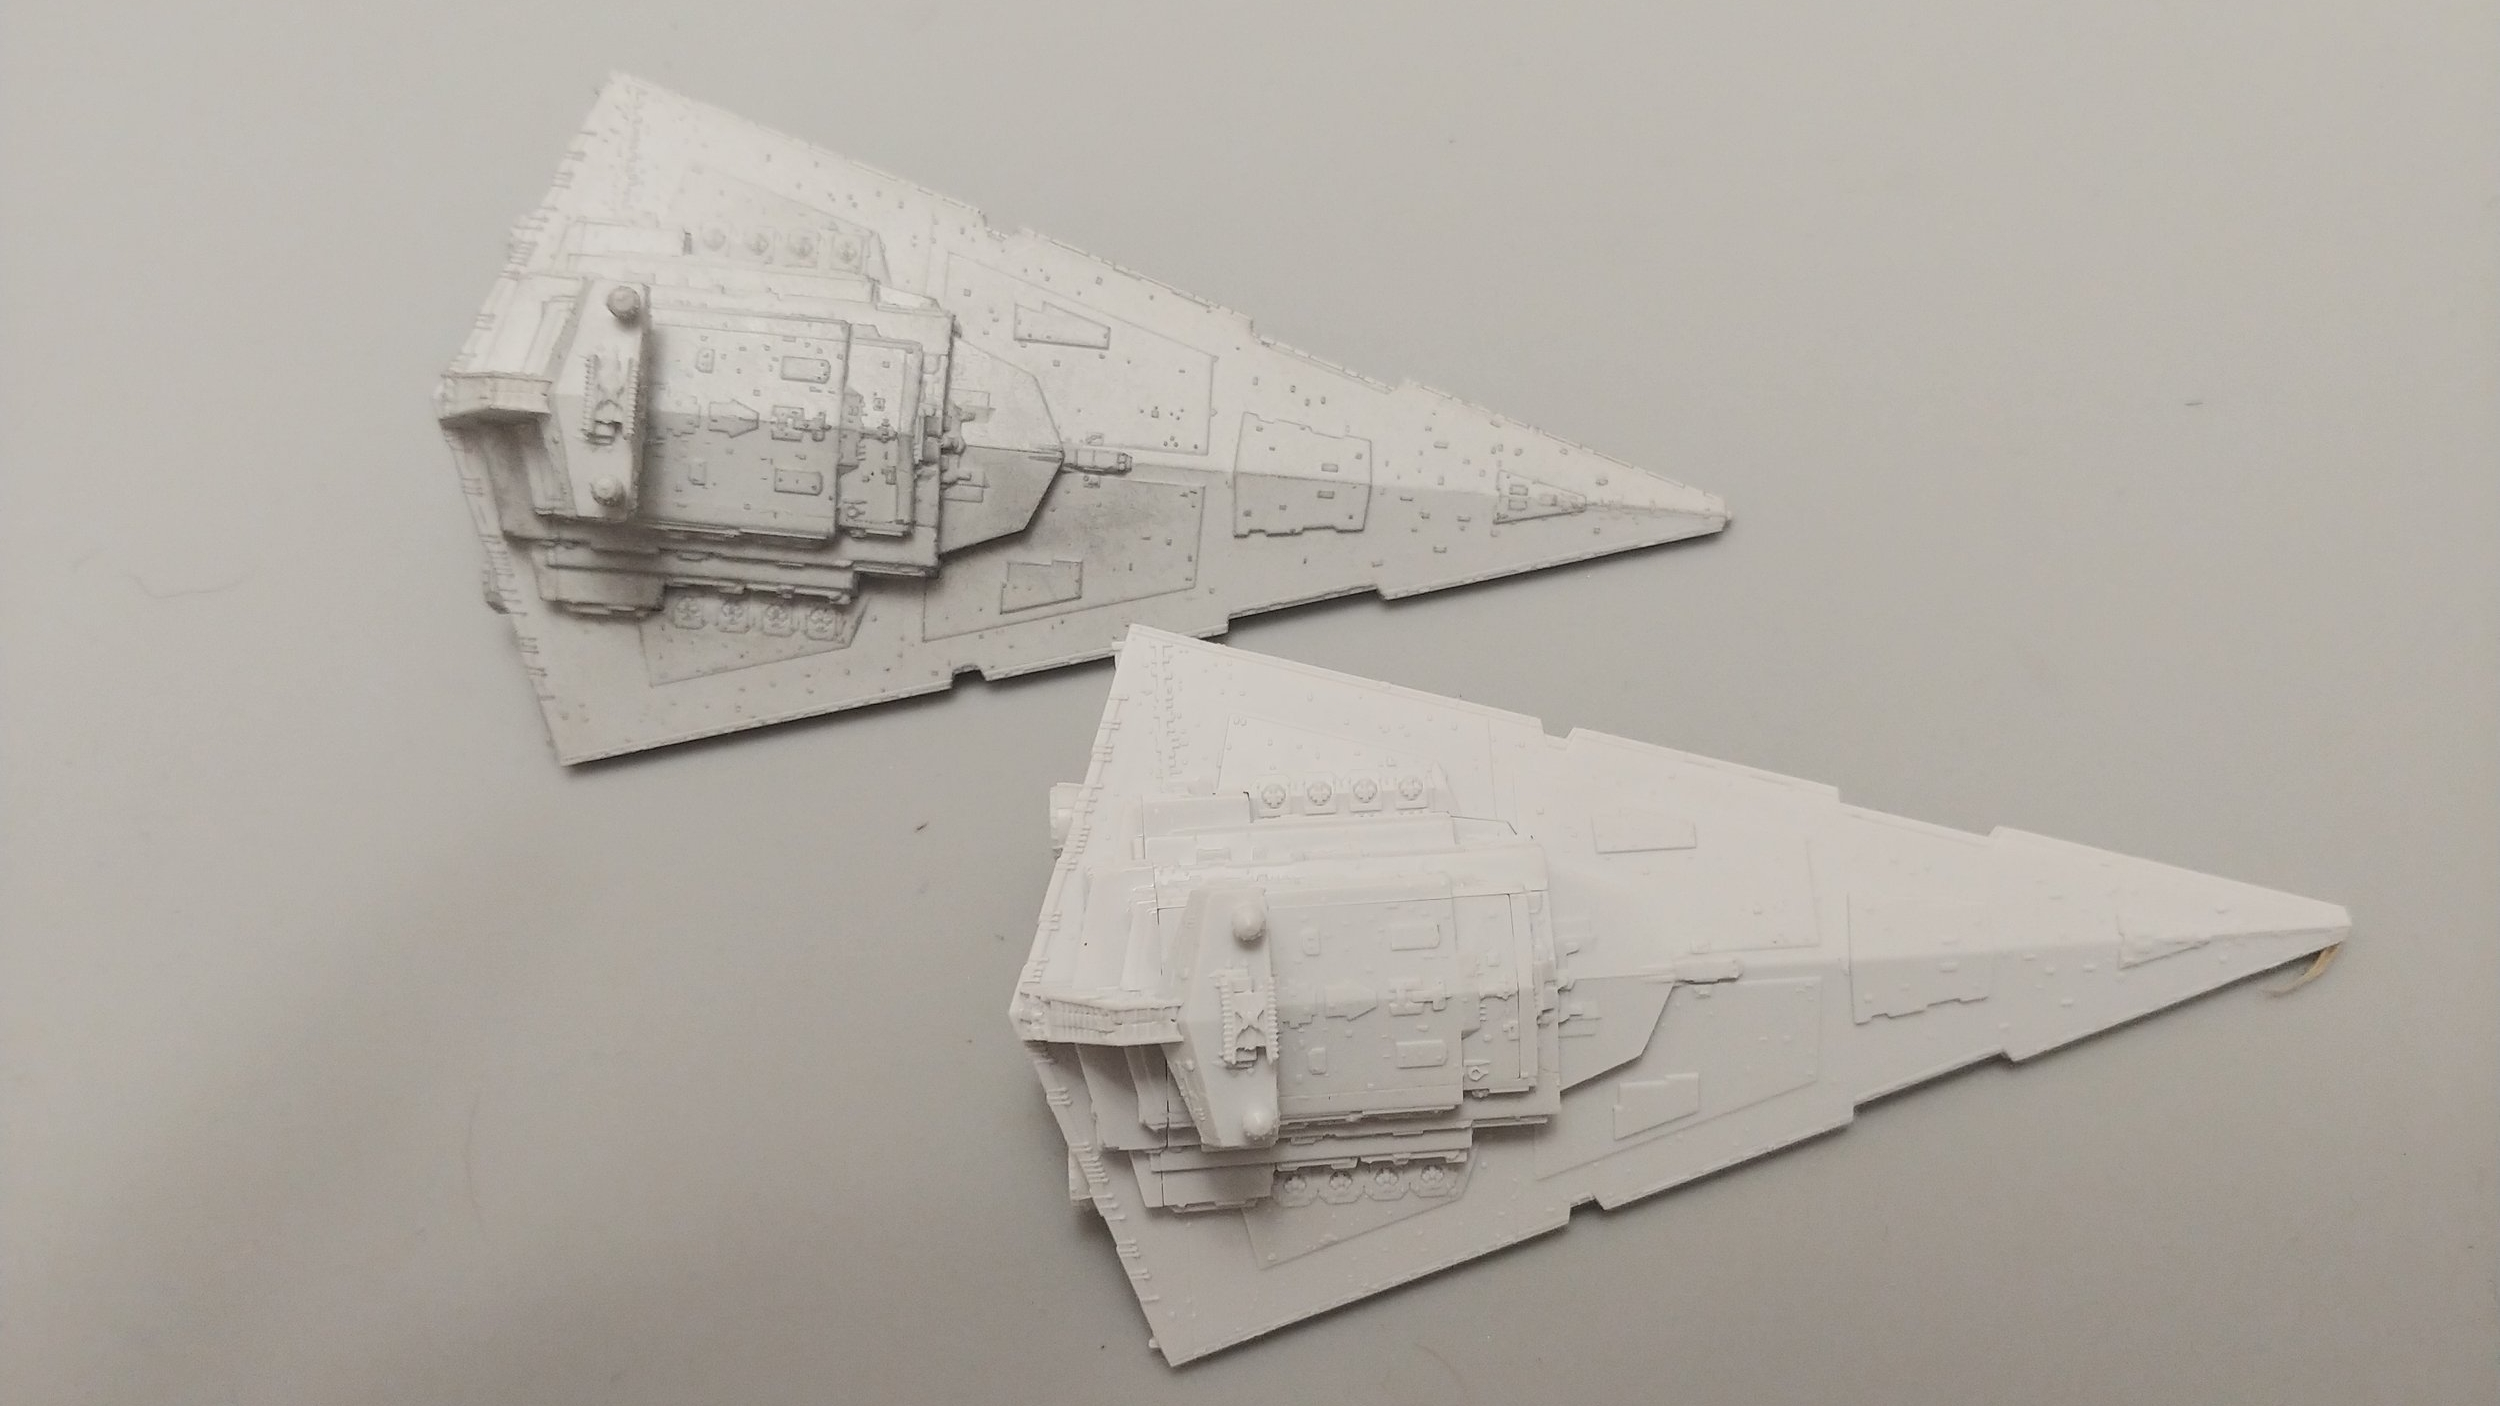 Above you can see my older painted Star Destroyer on top and the freshly constructed unpainted one on the bottom. The plan is to repaint the top one while I'm painting the bottom one.